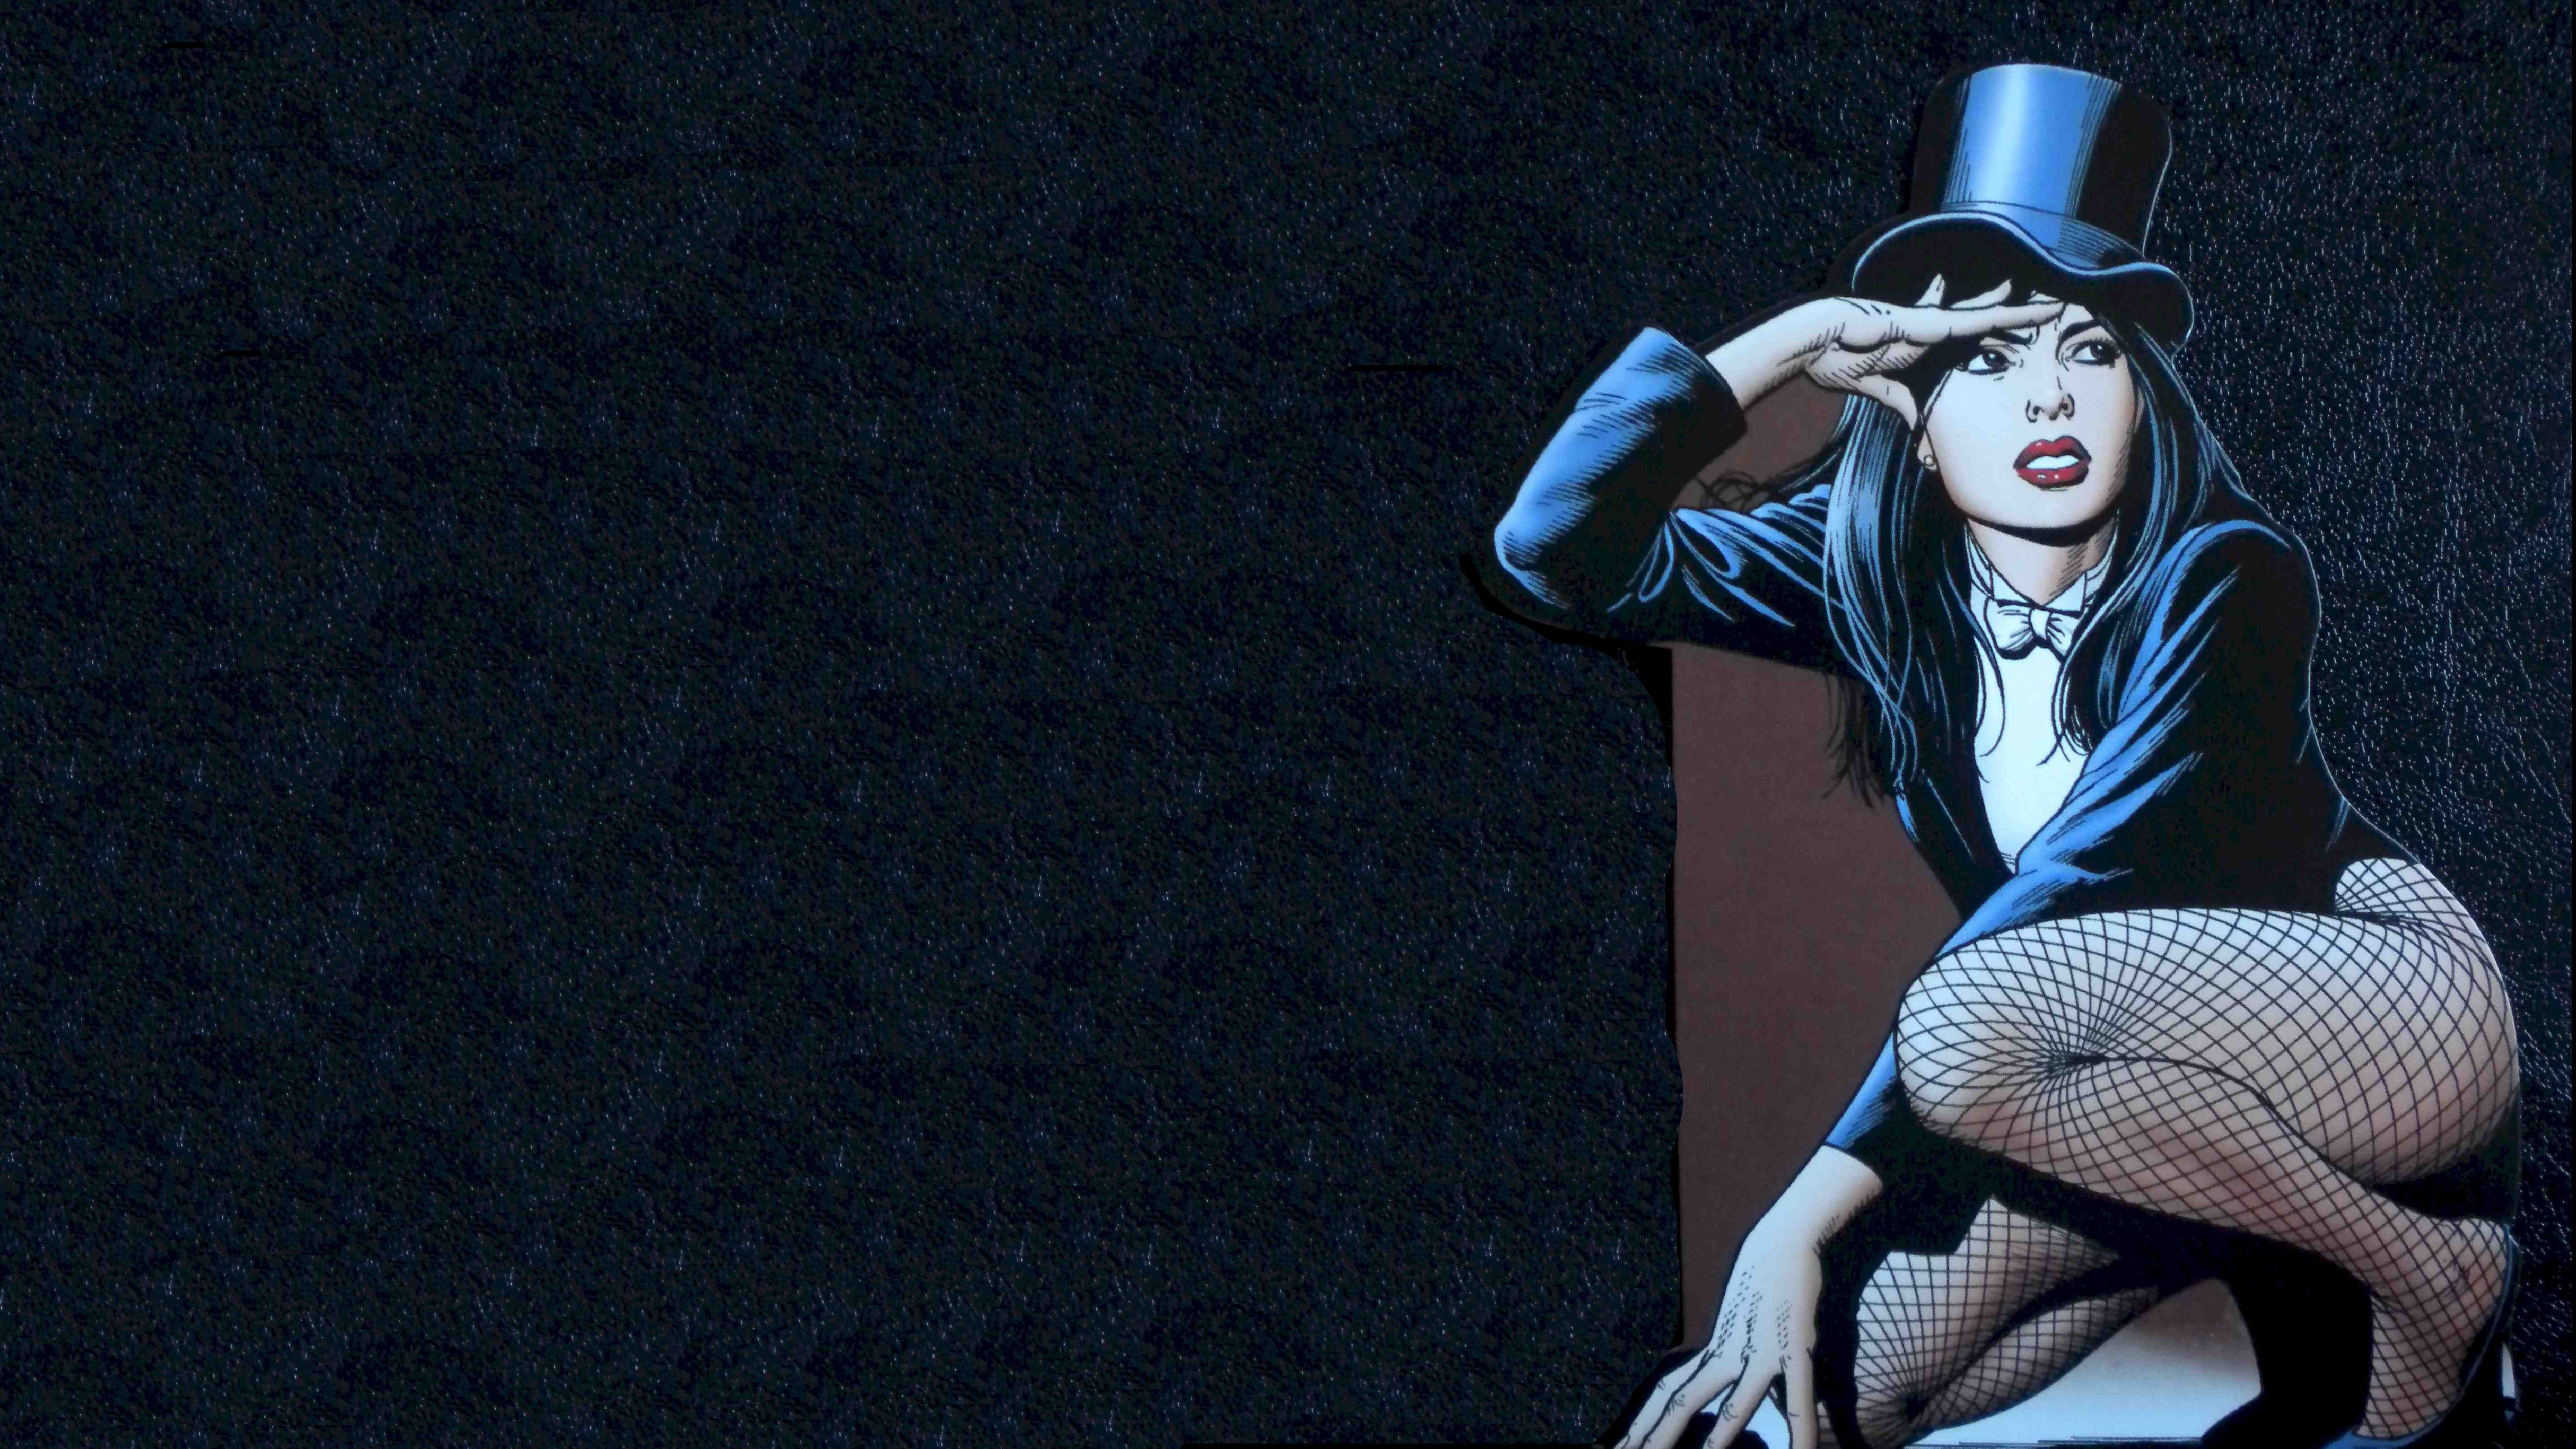 zatanna dc wallpaper - photo #40